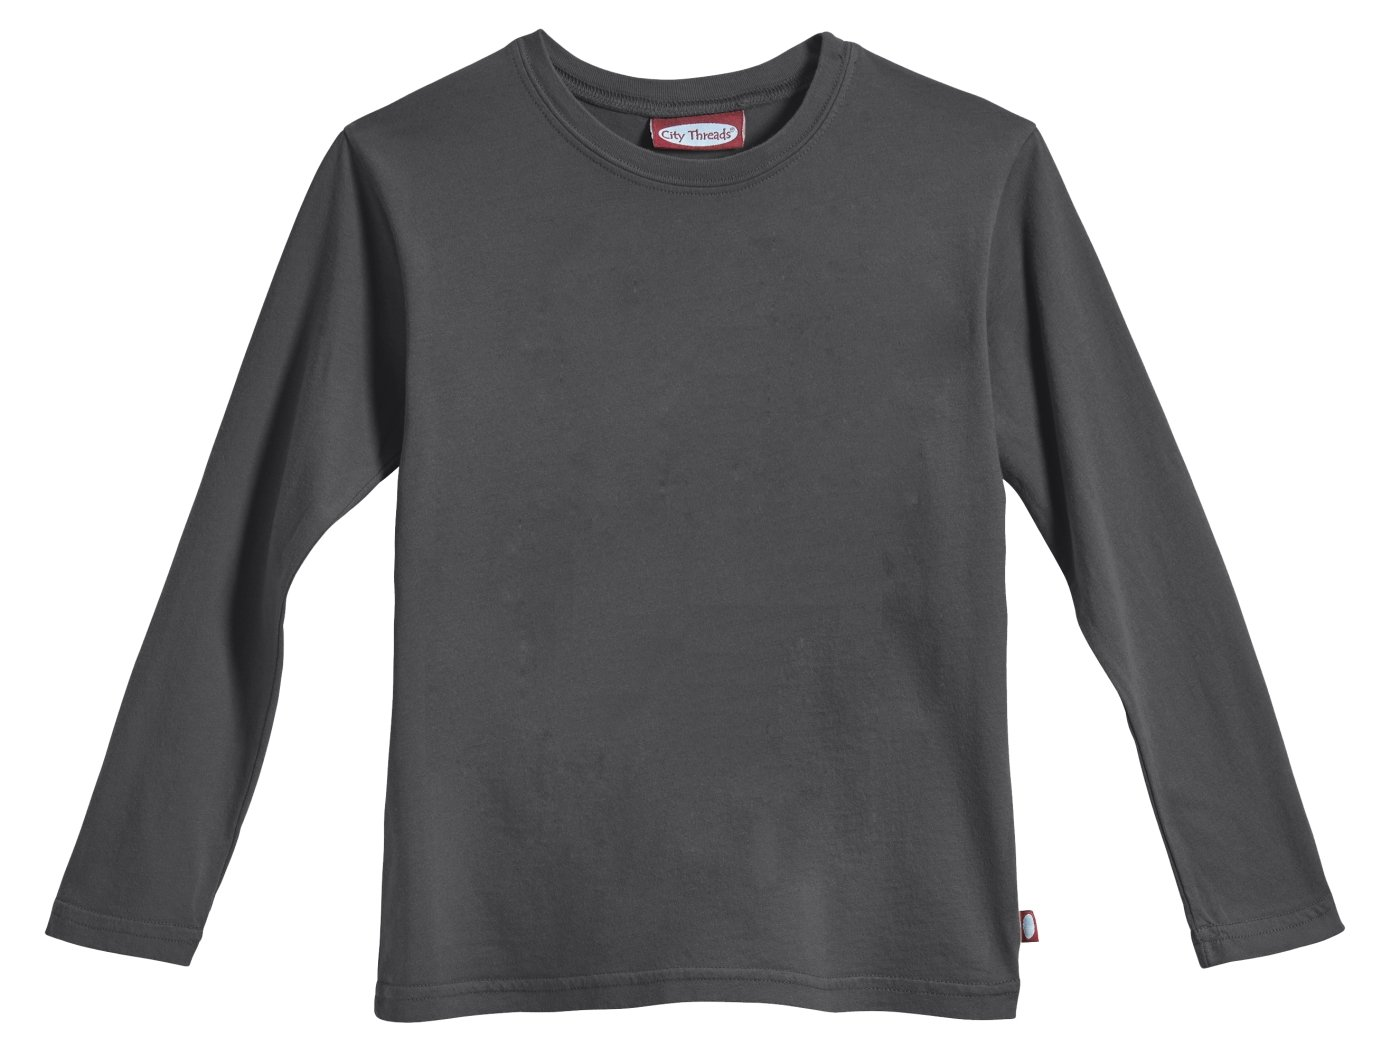 City Threads Big Boys' Cotton Long Sleeve Tee Base Layer for Fall Winter School or Play - Sensitive Skins or SPD Sensory Friendly Kids Clothing, Charcoal, 7